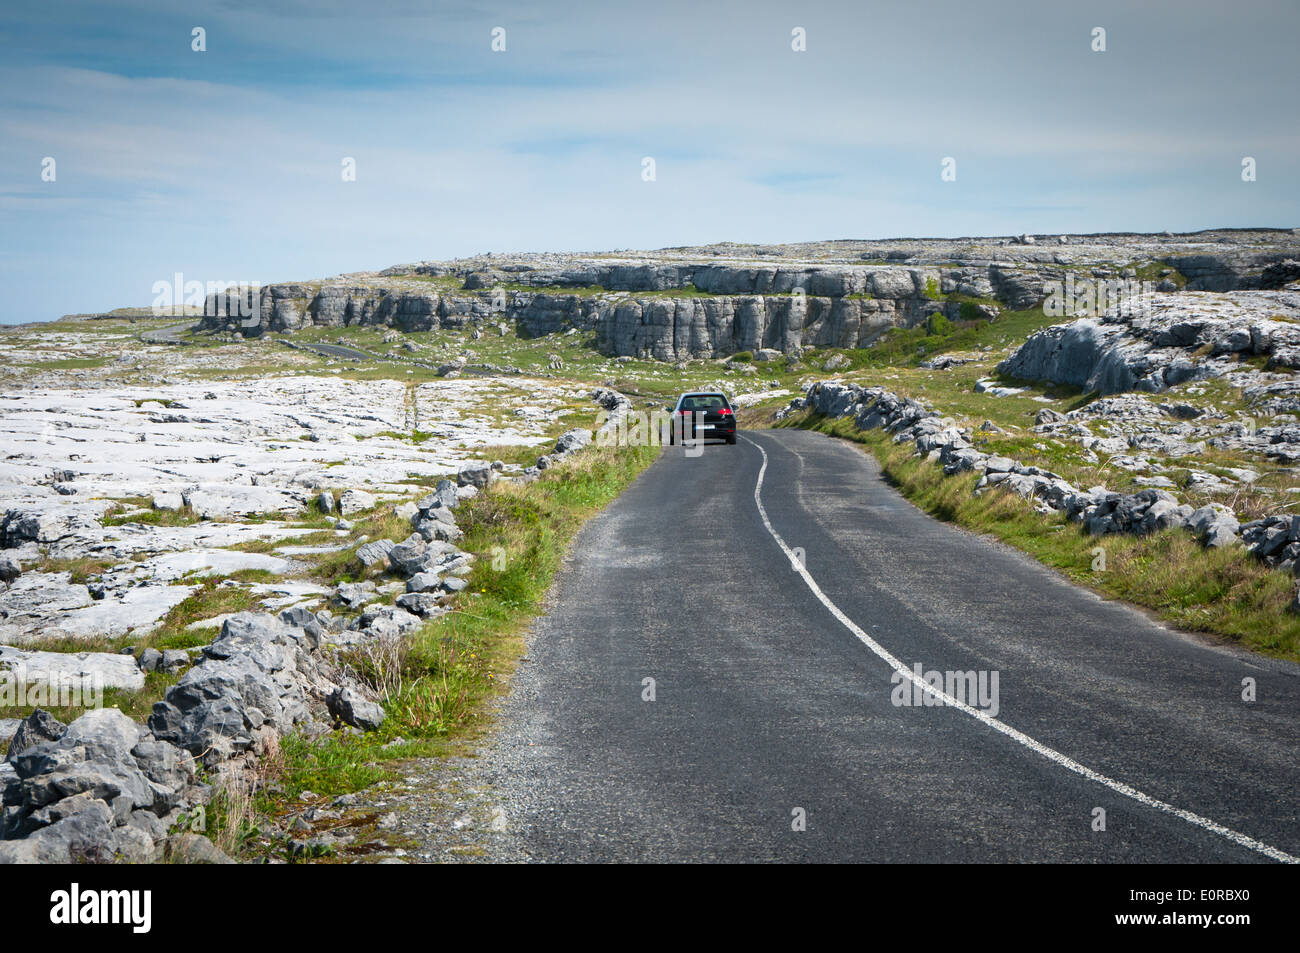 Car disappearing into the distance on the Touring Route through the Burren in County Clare along the Wild Atlantic Way on the West Coast of Ireland - Stock Image